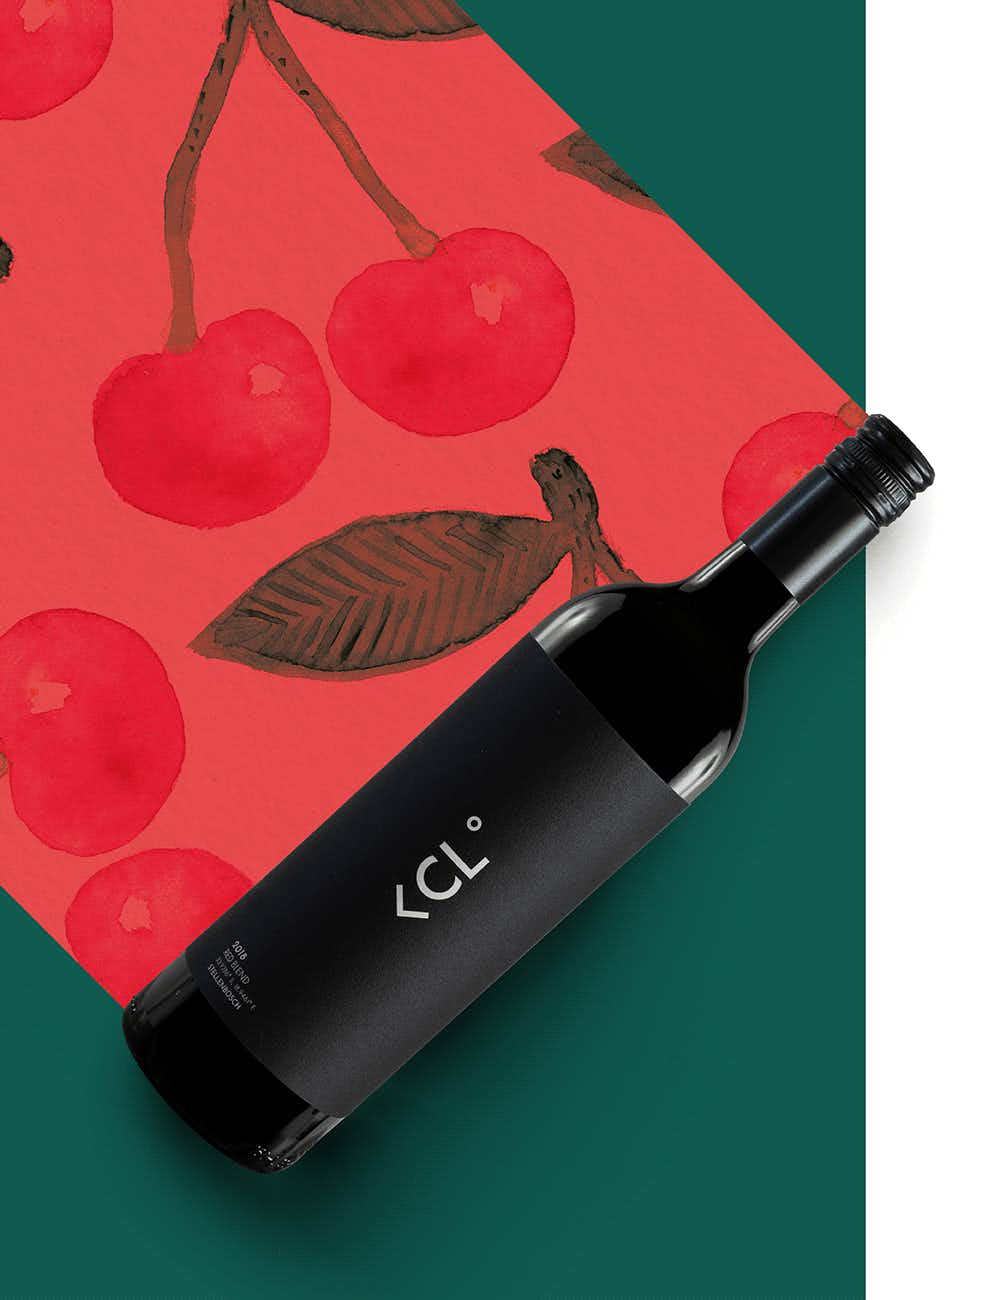 Oldenburg Vineyards CL° Red Blend 2018